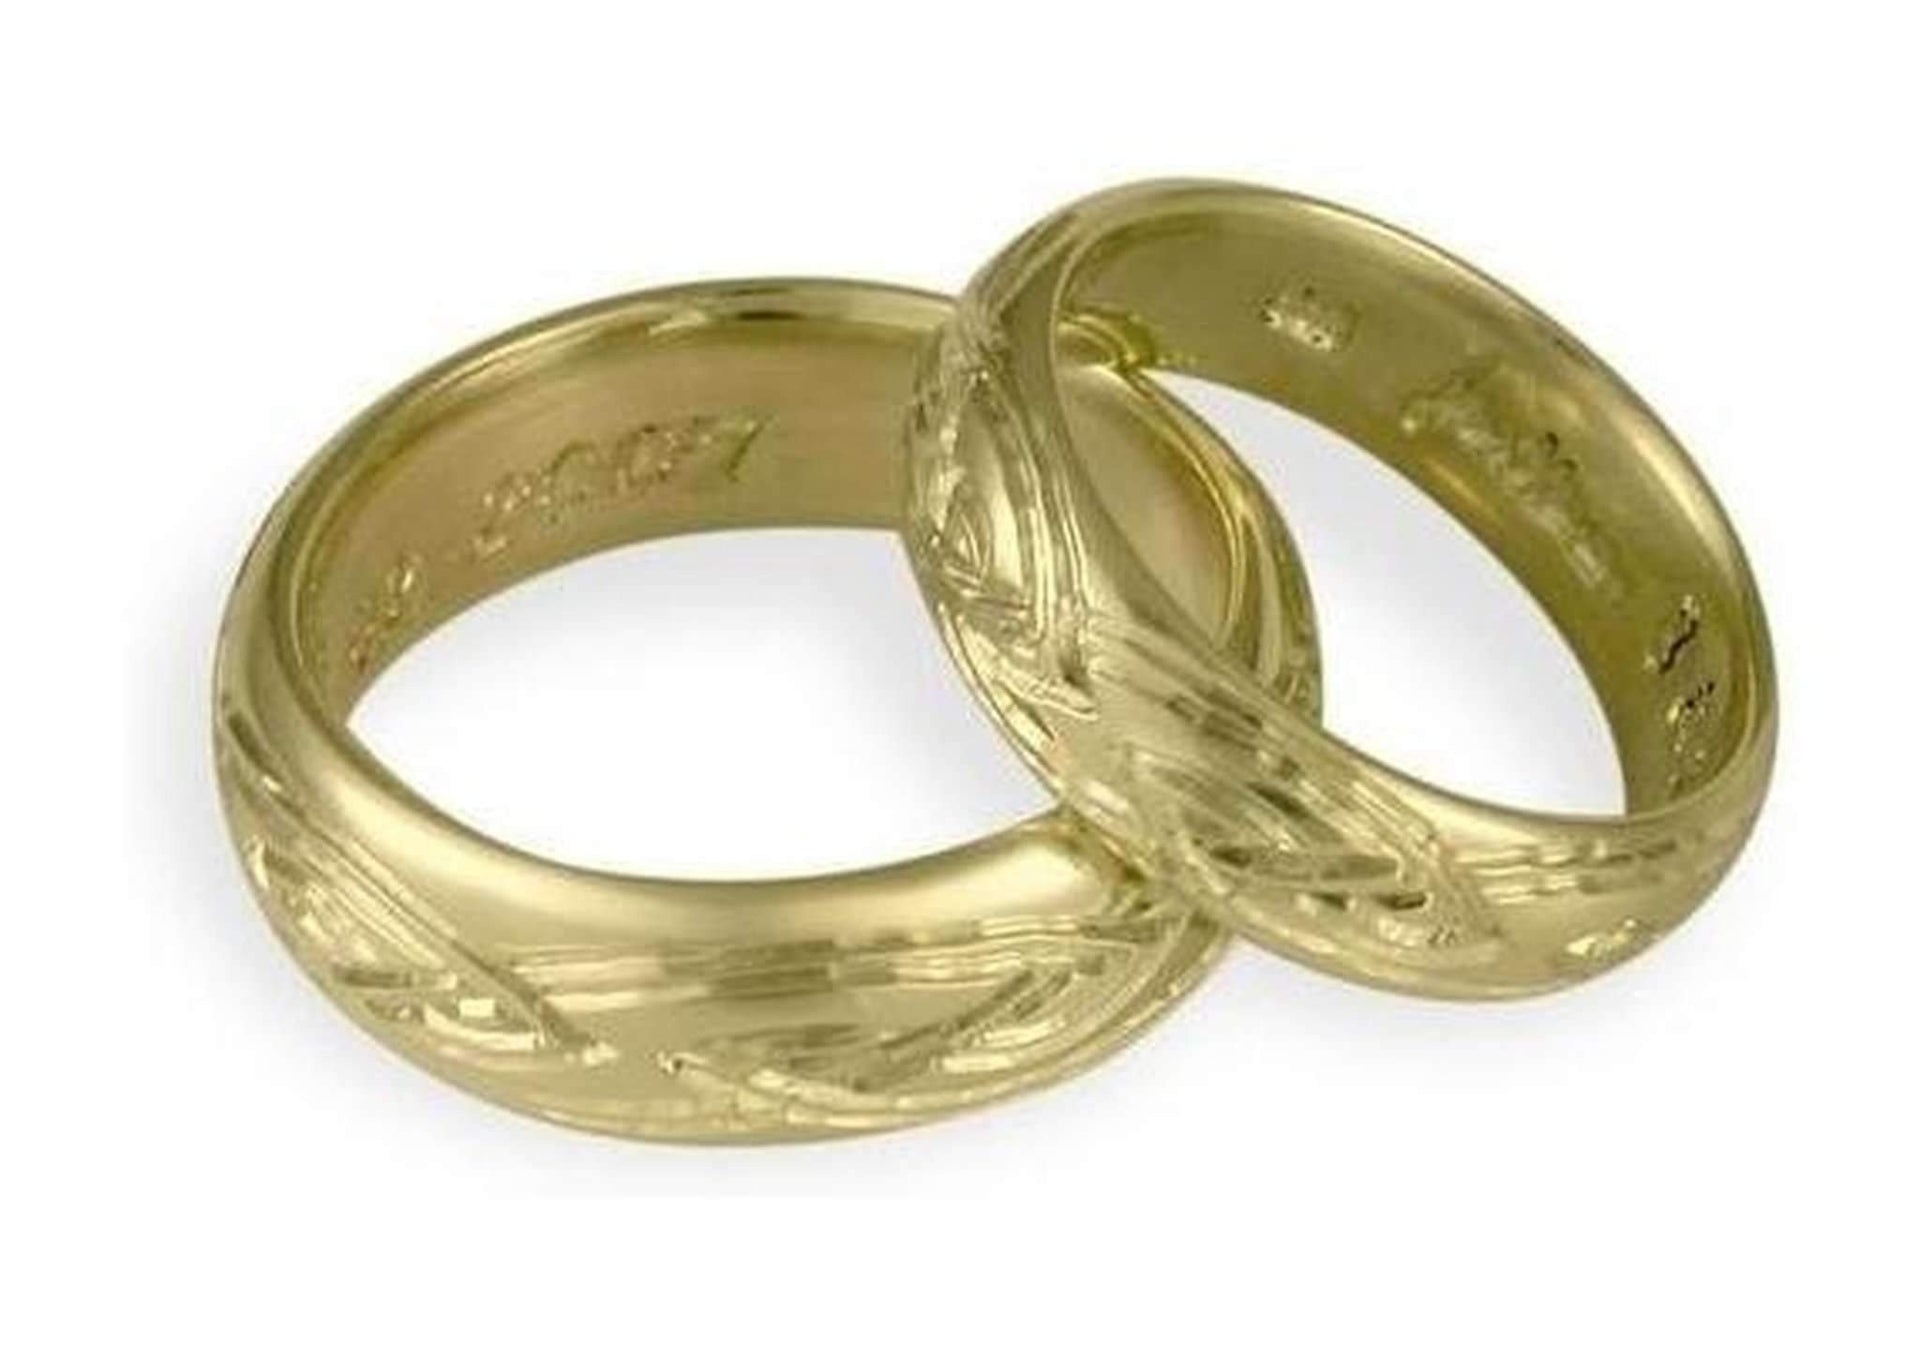 Custom Engraved wedding band set   - Jens Hansen